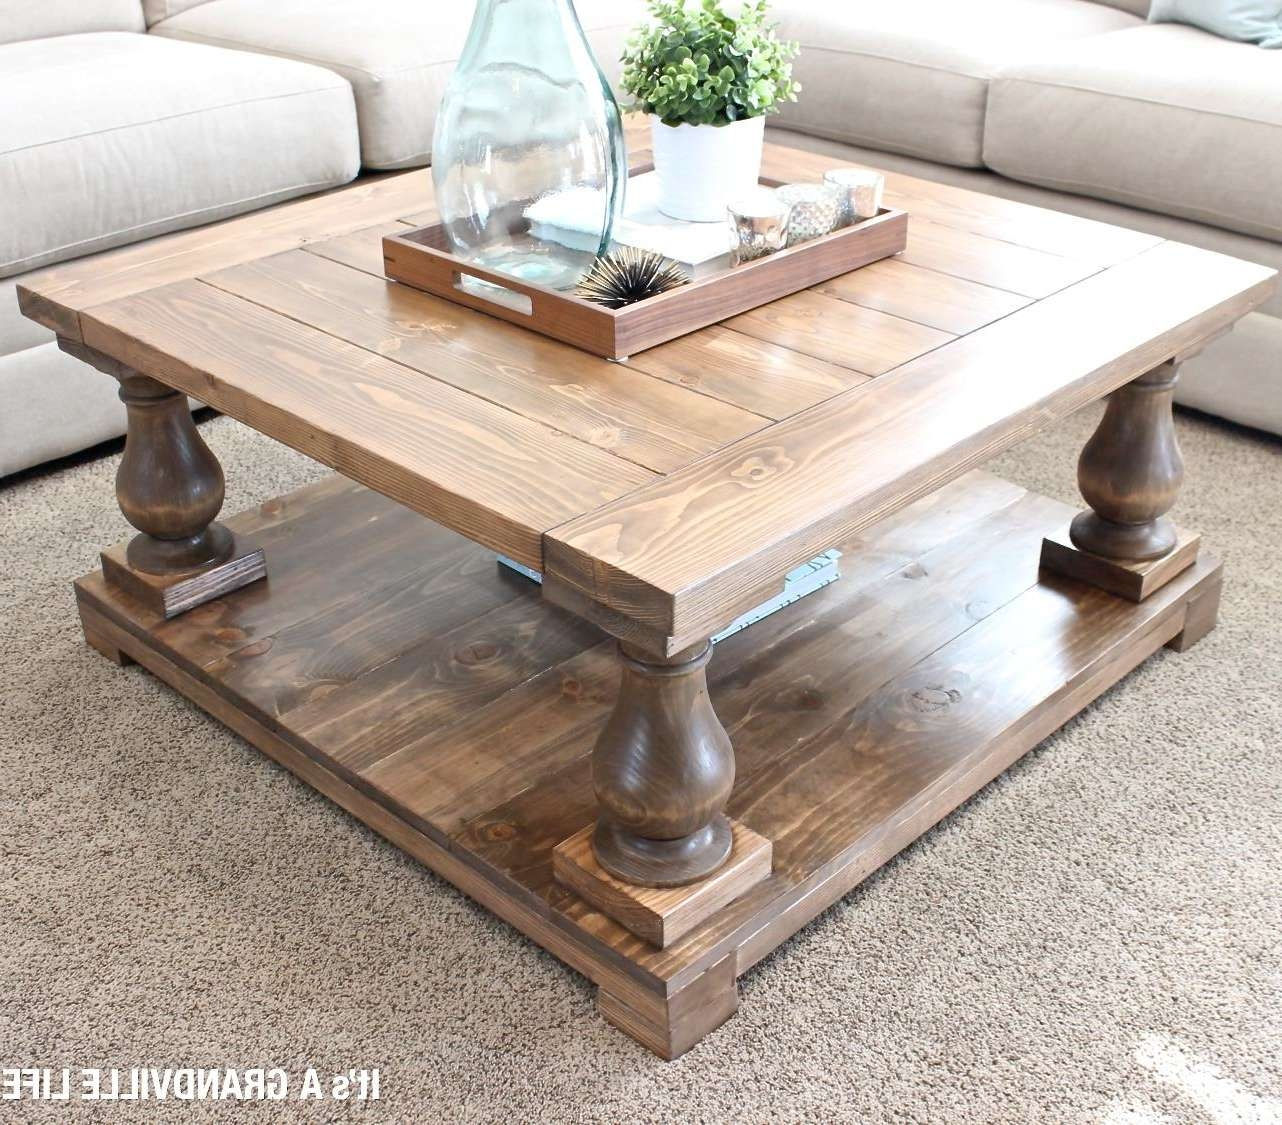 Furniture Diy Coffee Tables Ideas Hd Wallpaper Pictures Diy Modern Inside Newest French Country Coffee Tables (View 5 of 20)